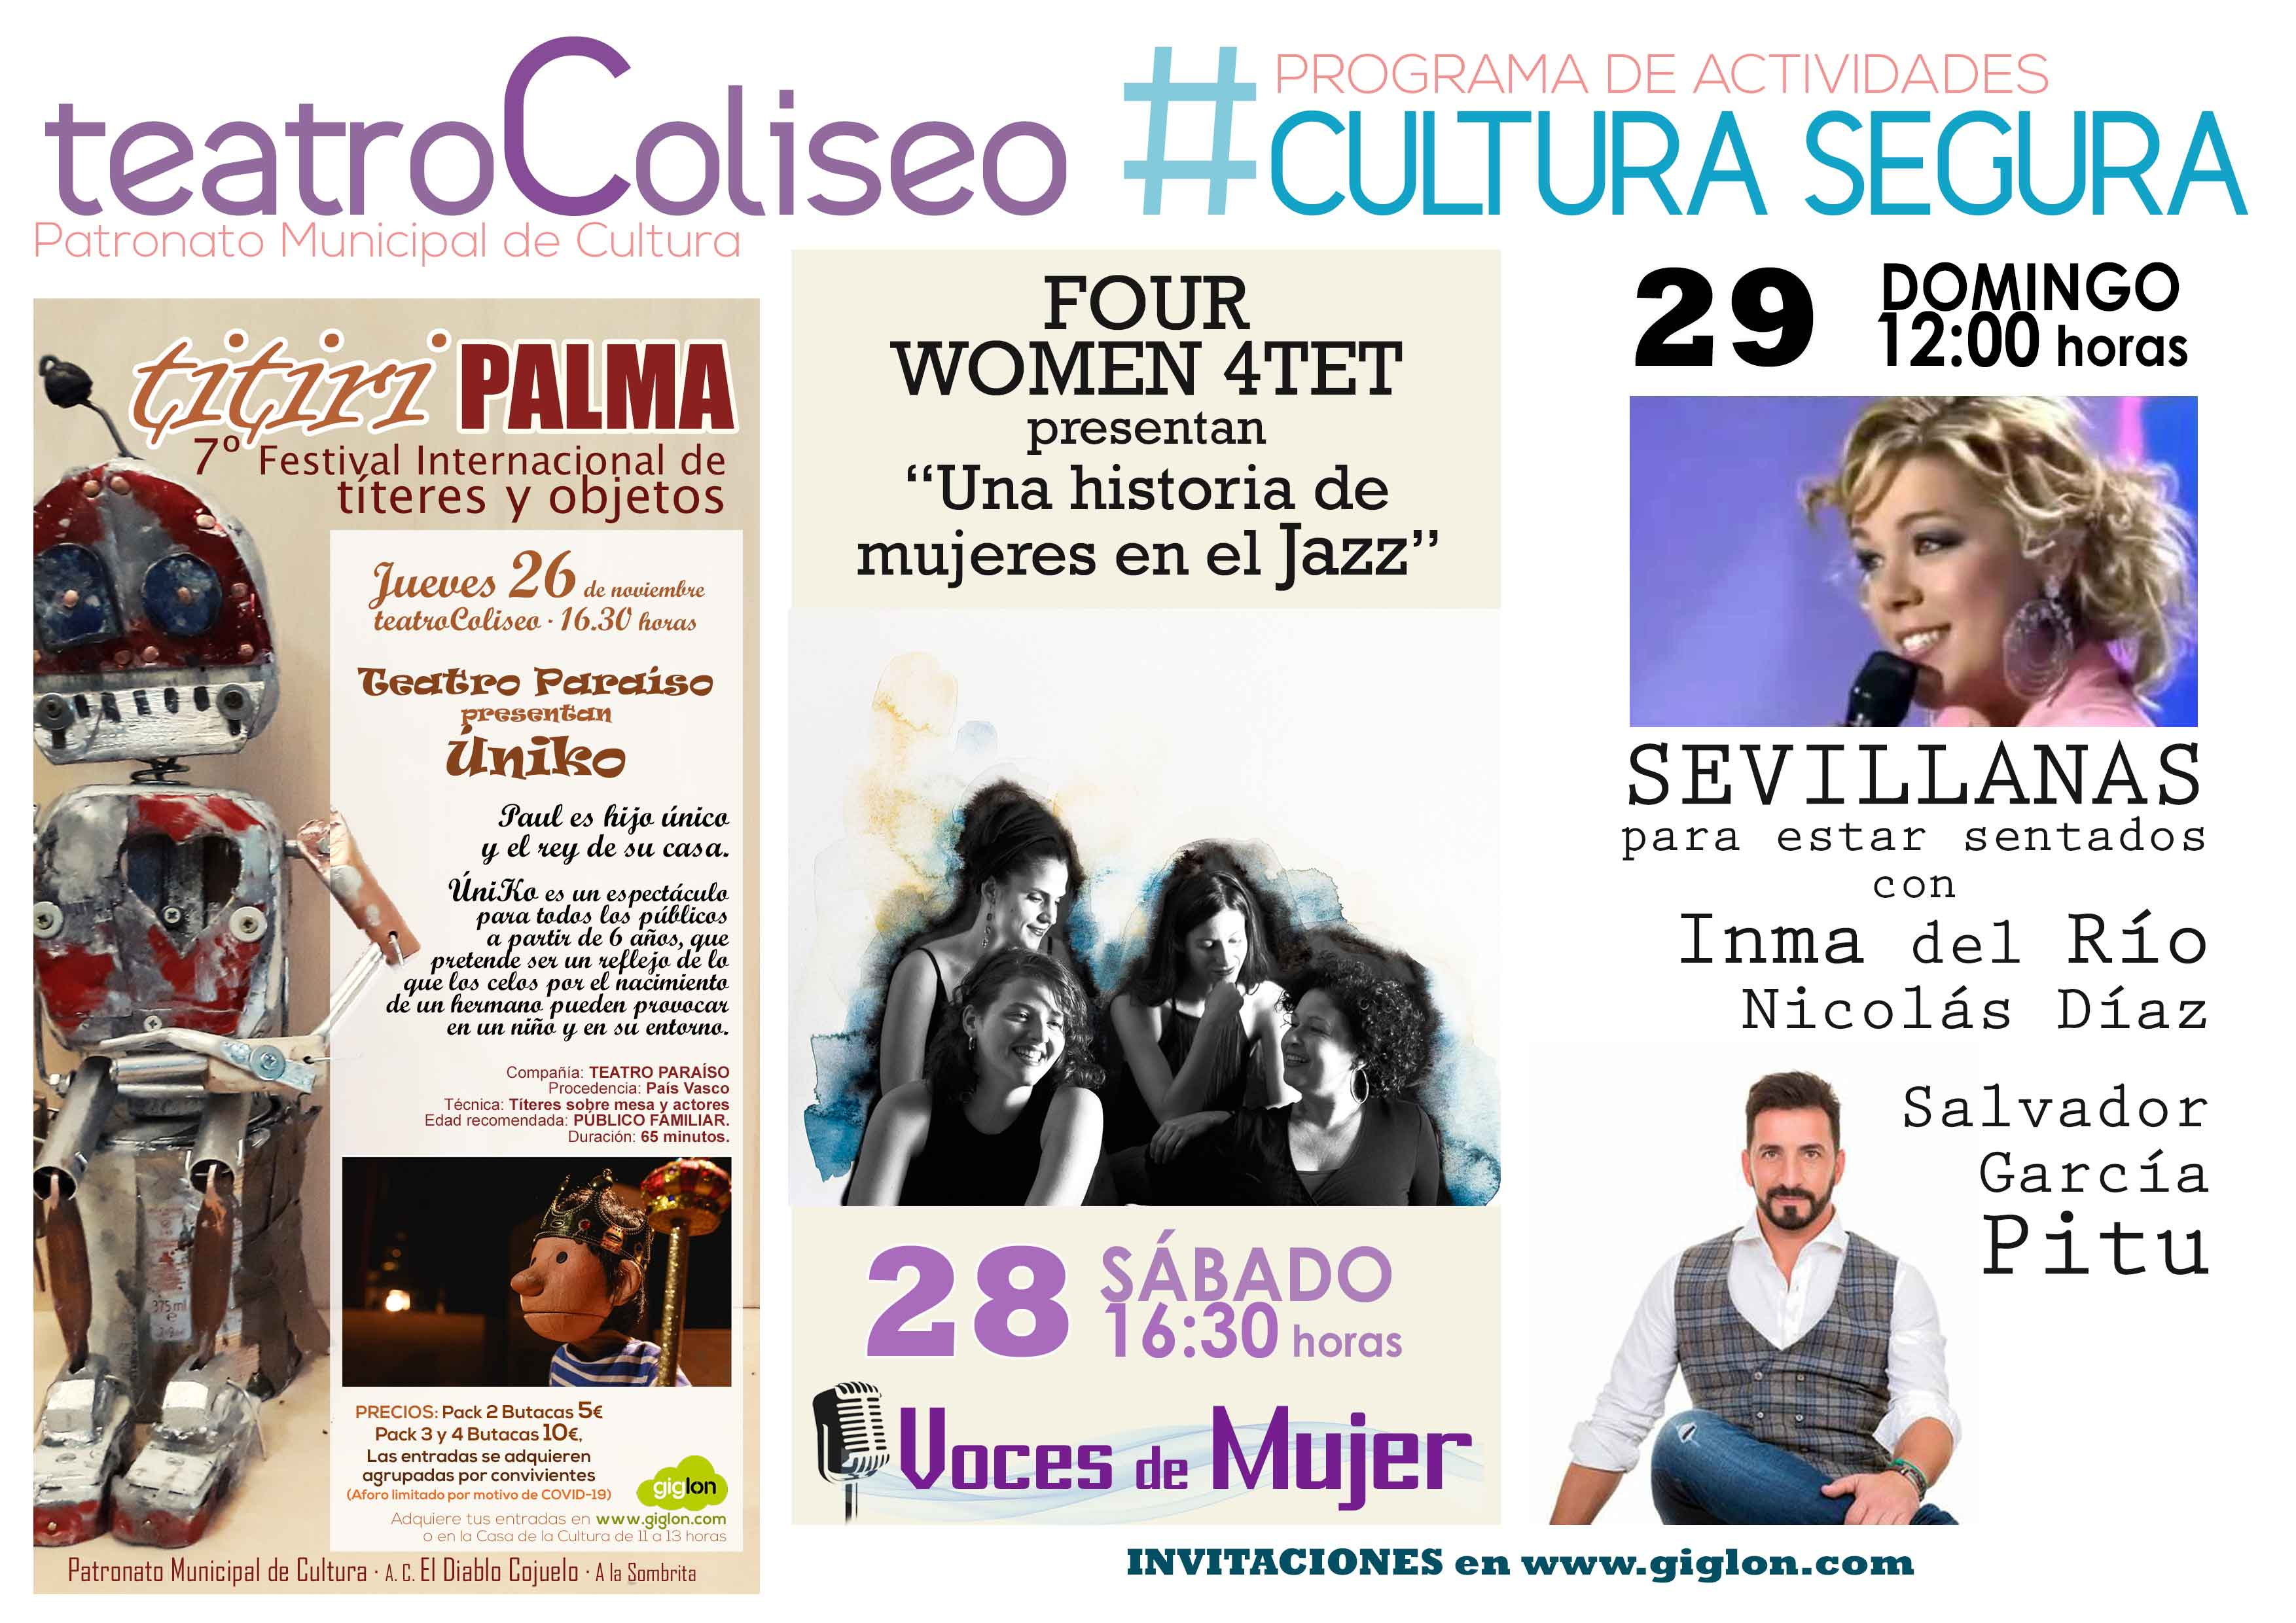 https://www.palmadelrio.es/sites/default/files/cultura-segura-26-29-nov.jpg